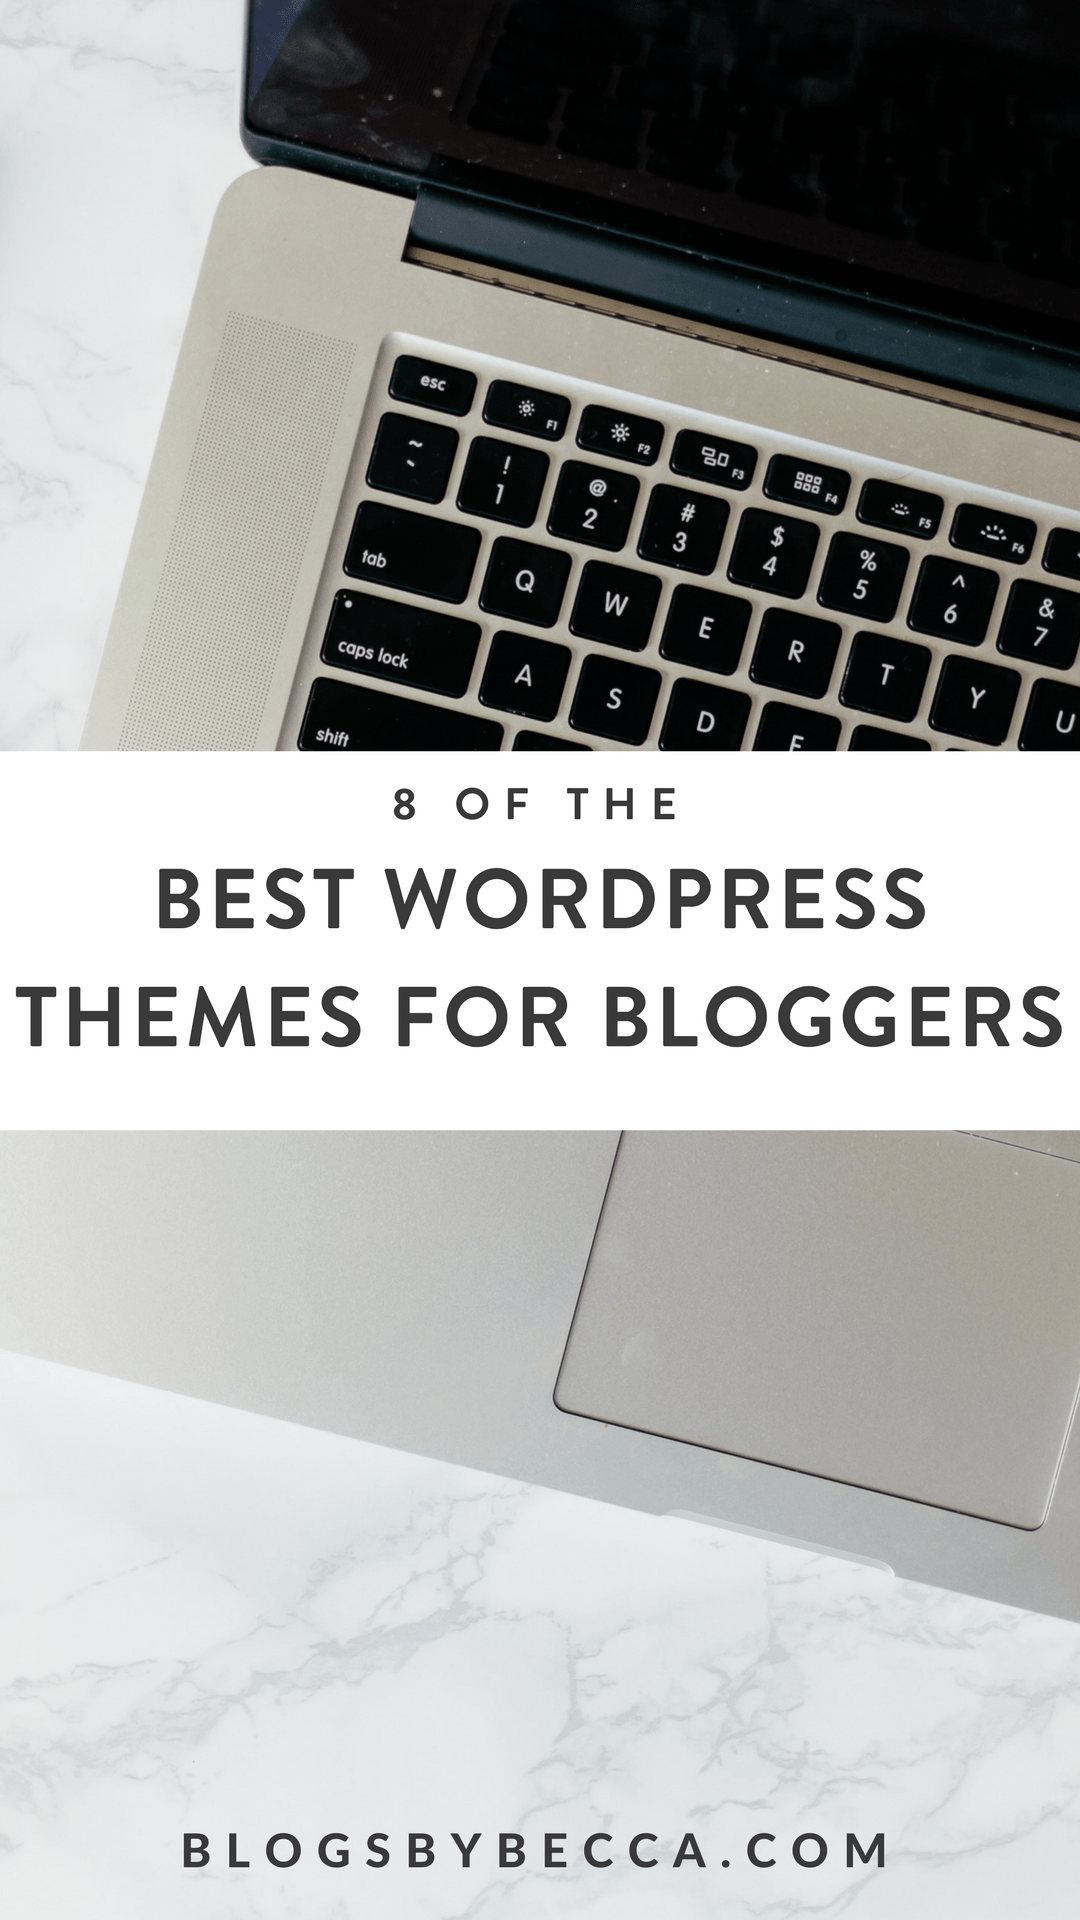 The Best WordPress Themes for Bloggers! These WordPress themes are great for beginner bloggers or advanced bloggers. Designing your blog is easy with these themes. Click through to see them all!